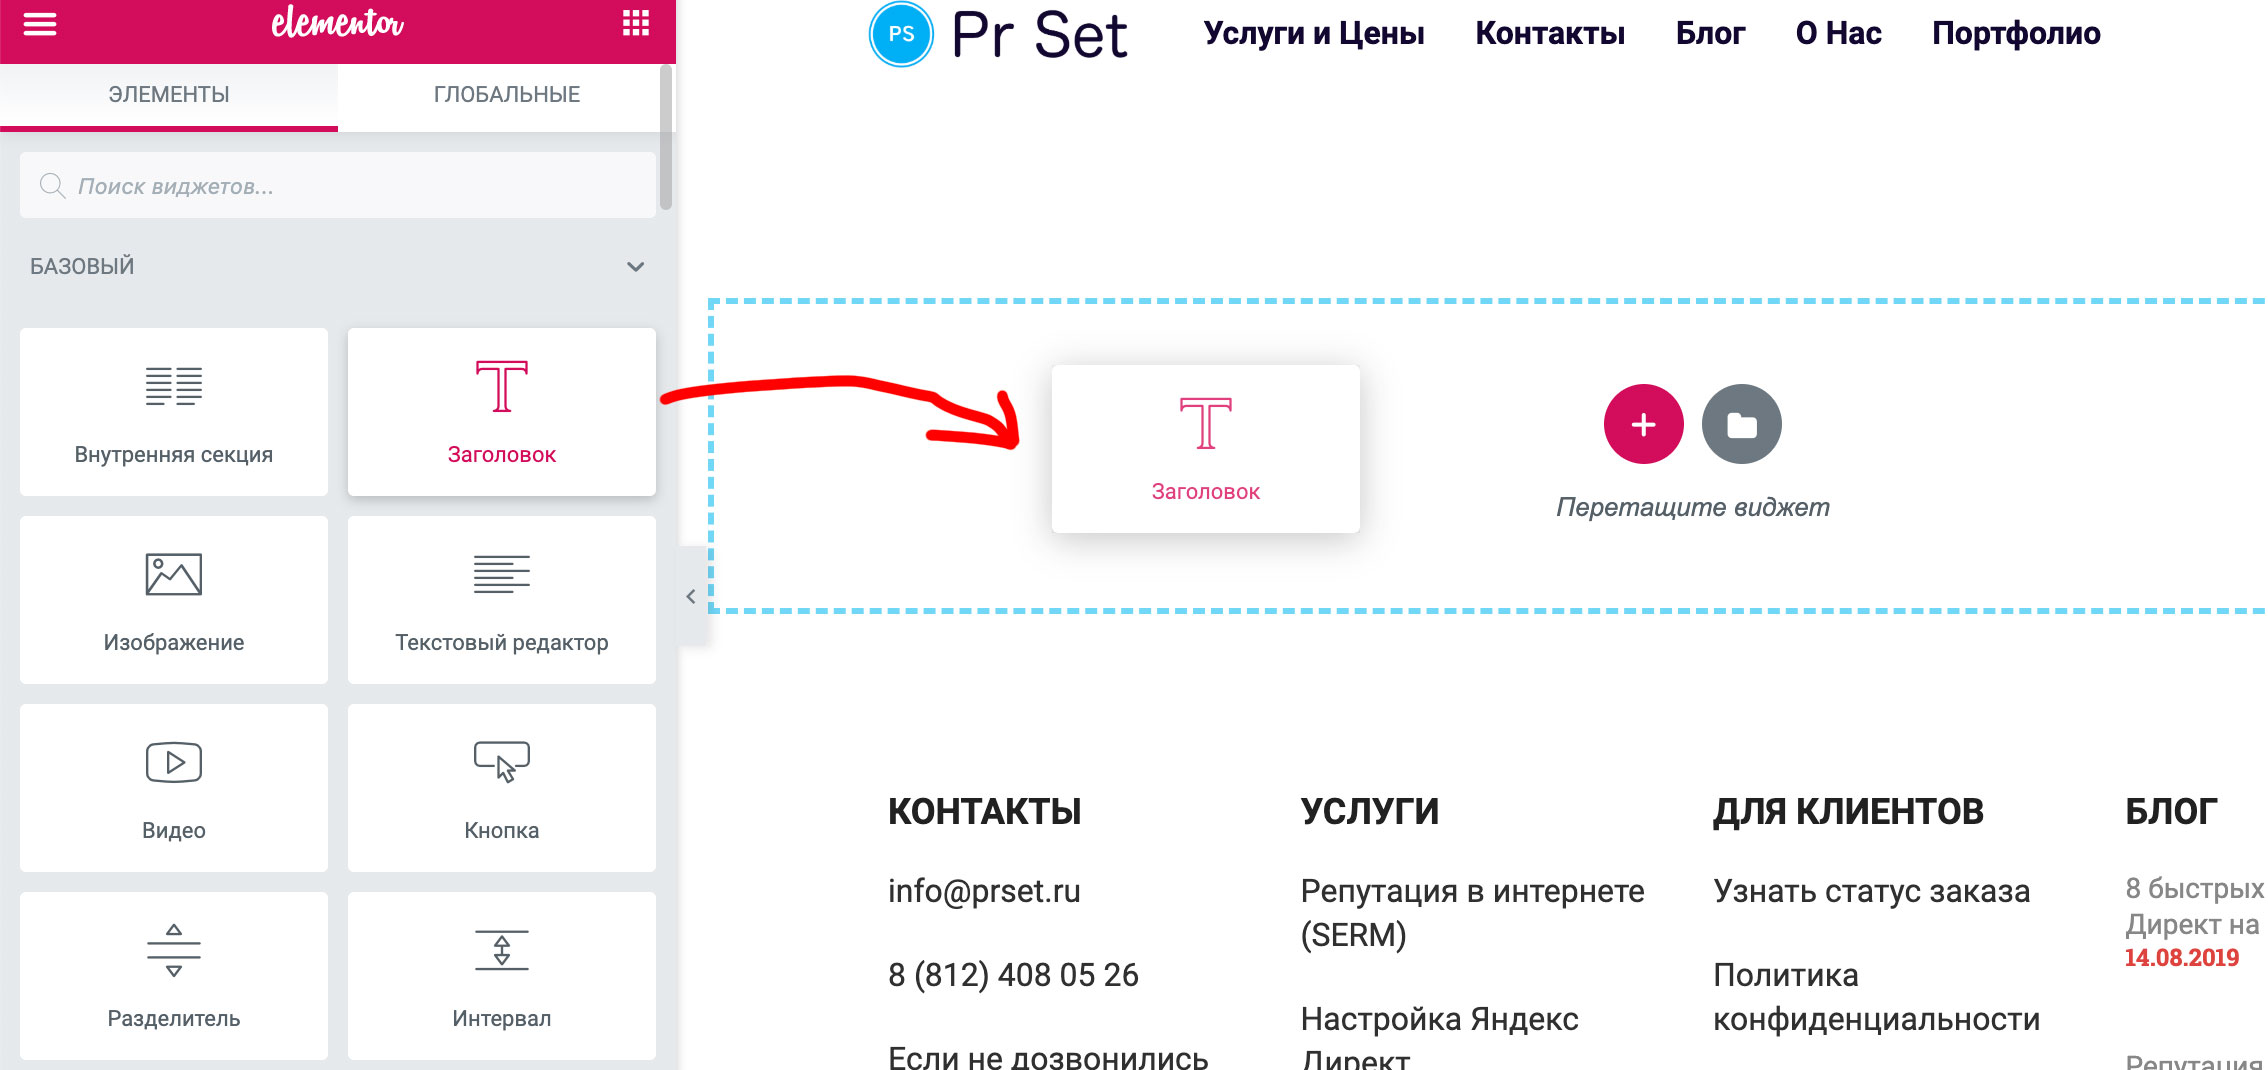 Плагин Elementor Pro для WordPress как настроить